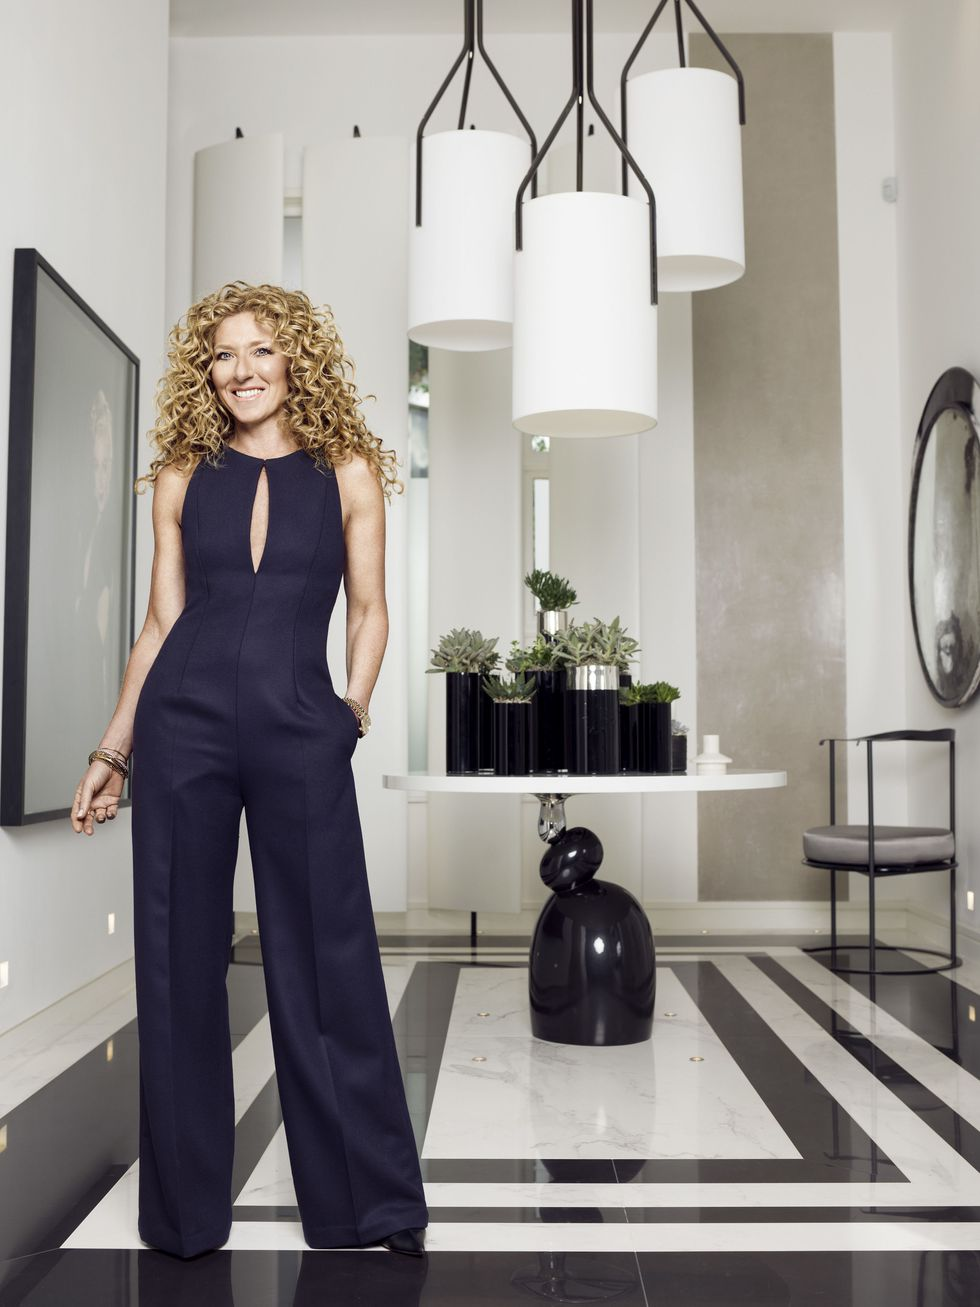 Famous Interior Designers   Kelly Hoppen   Best Interior Designers In South  Africa   Women Empowerment